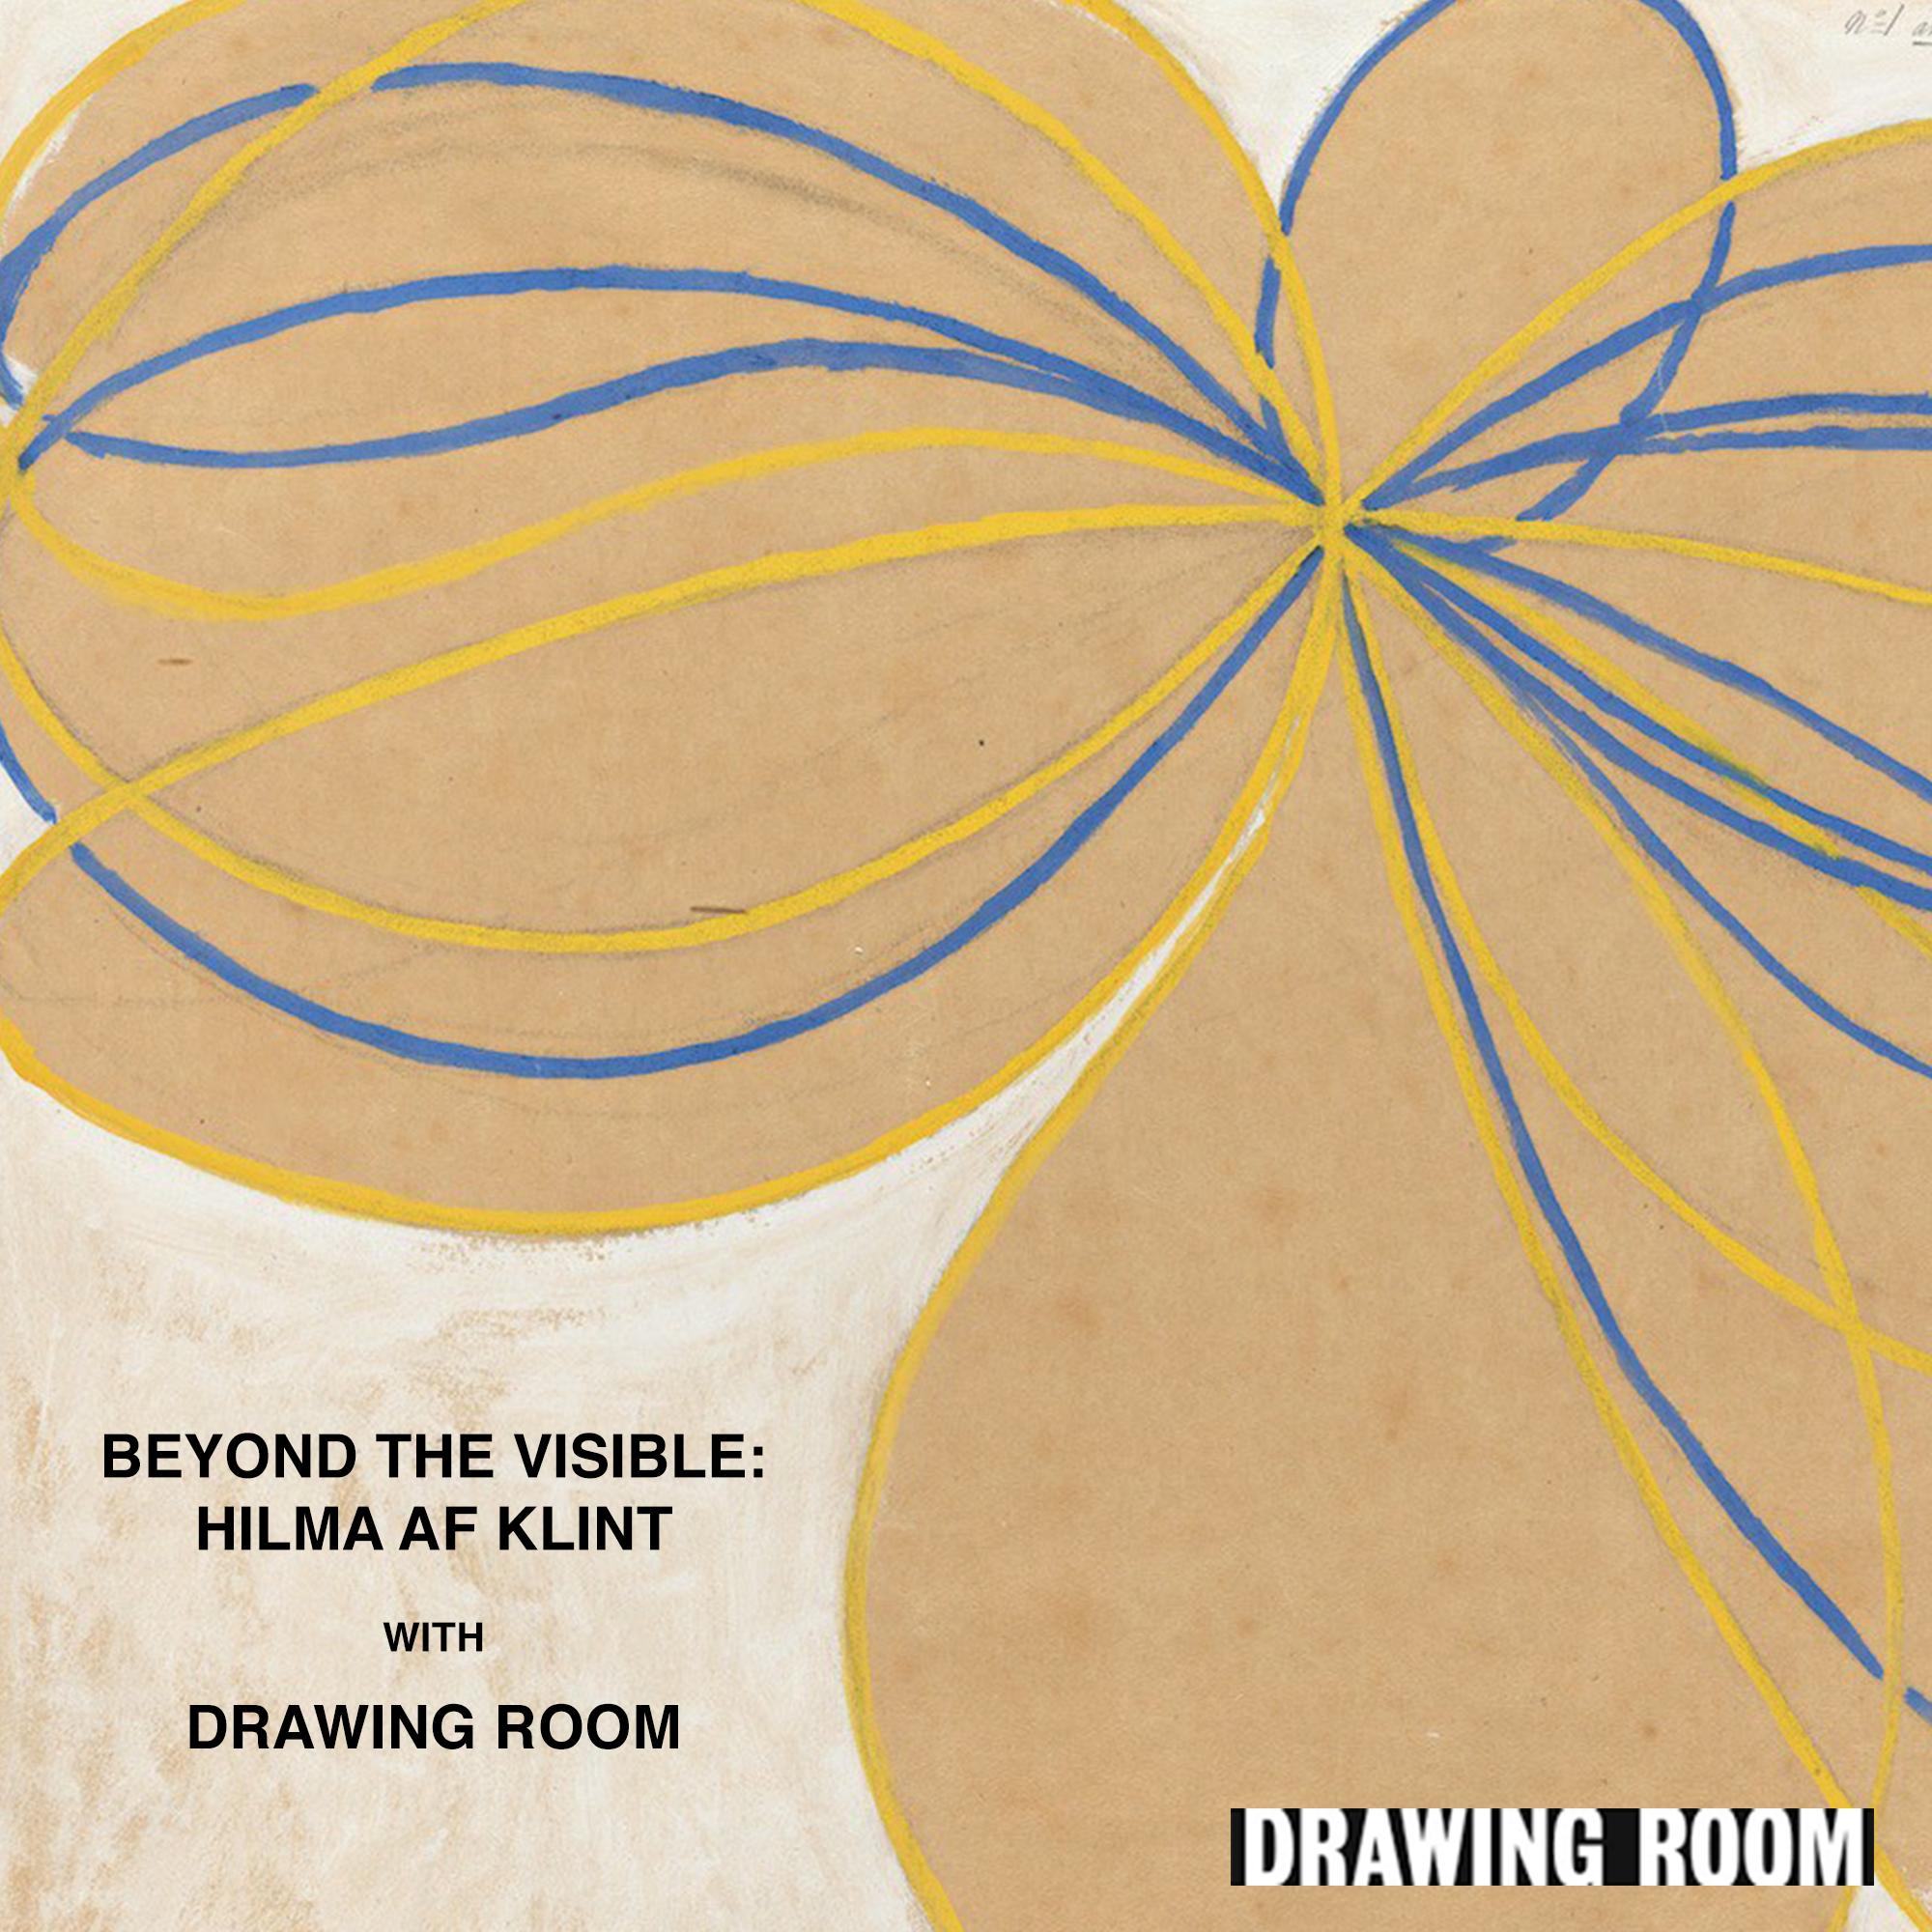 Beyond the Visible: Hilma af Klint with Drawing Room- Example Screener